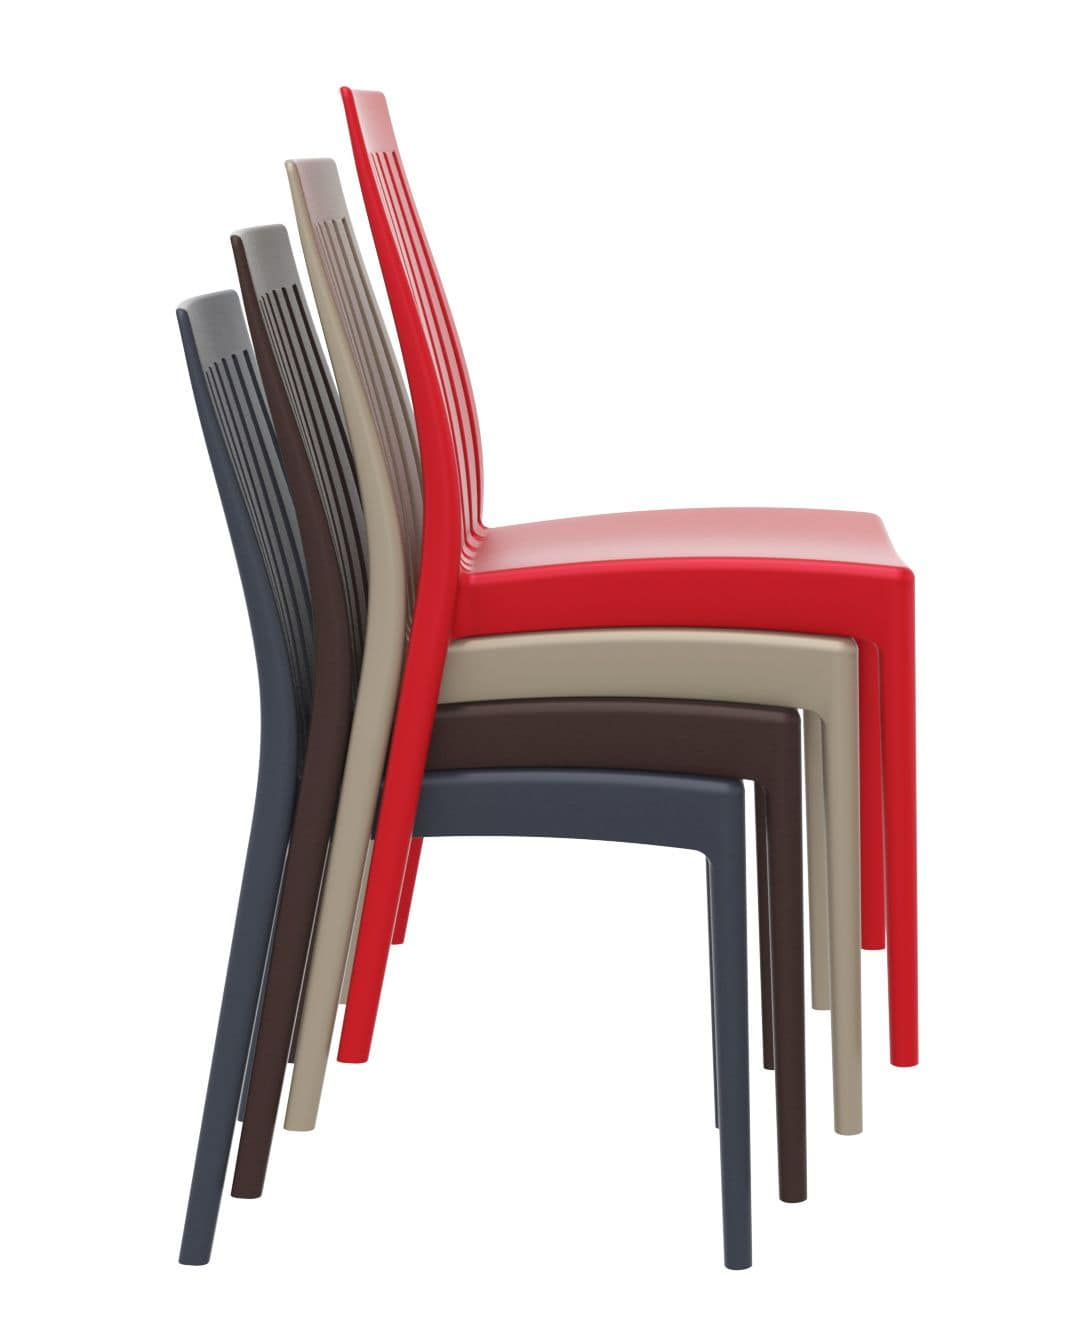 Sonia, Polypropylene chair for indoor and outdoor, stackable